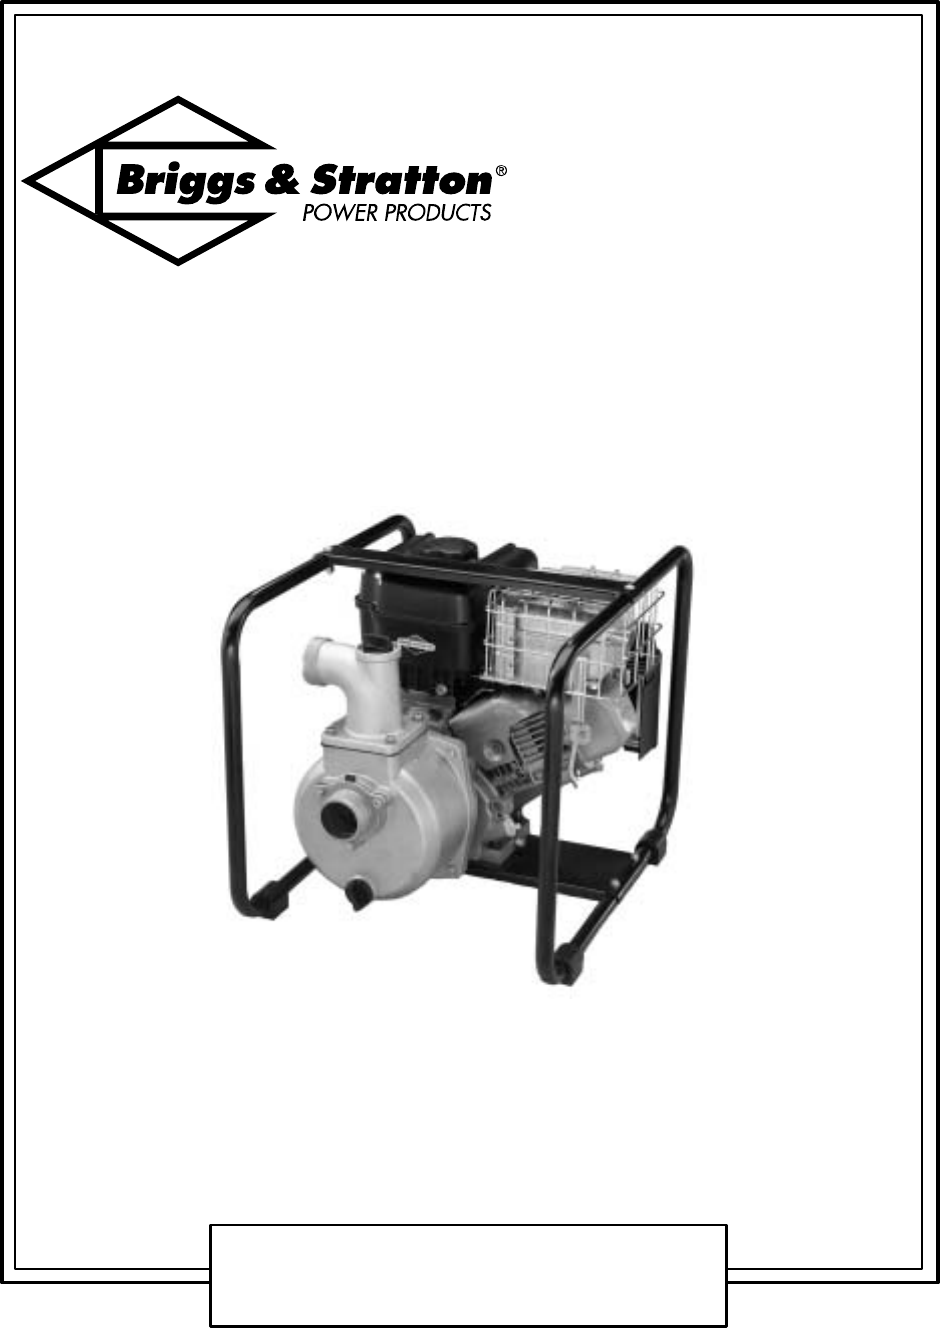 Briggs & Stratton Plumbing Product AC0201 User Guide